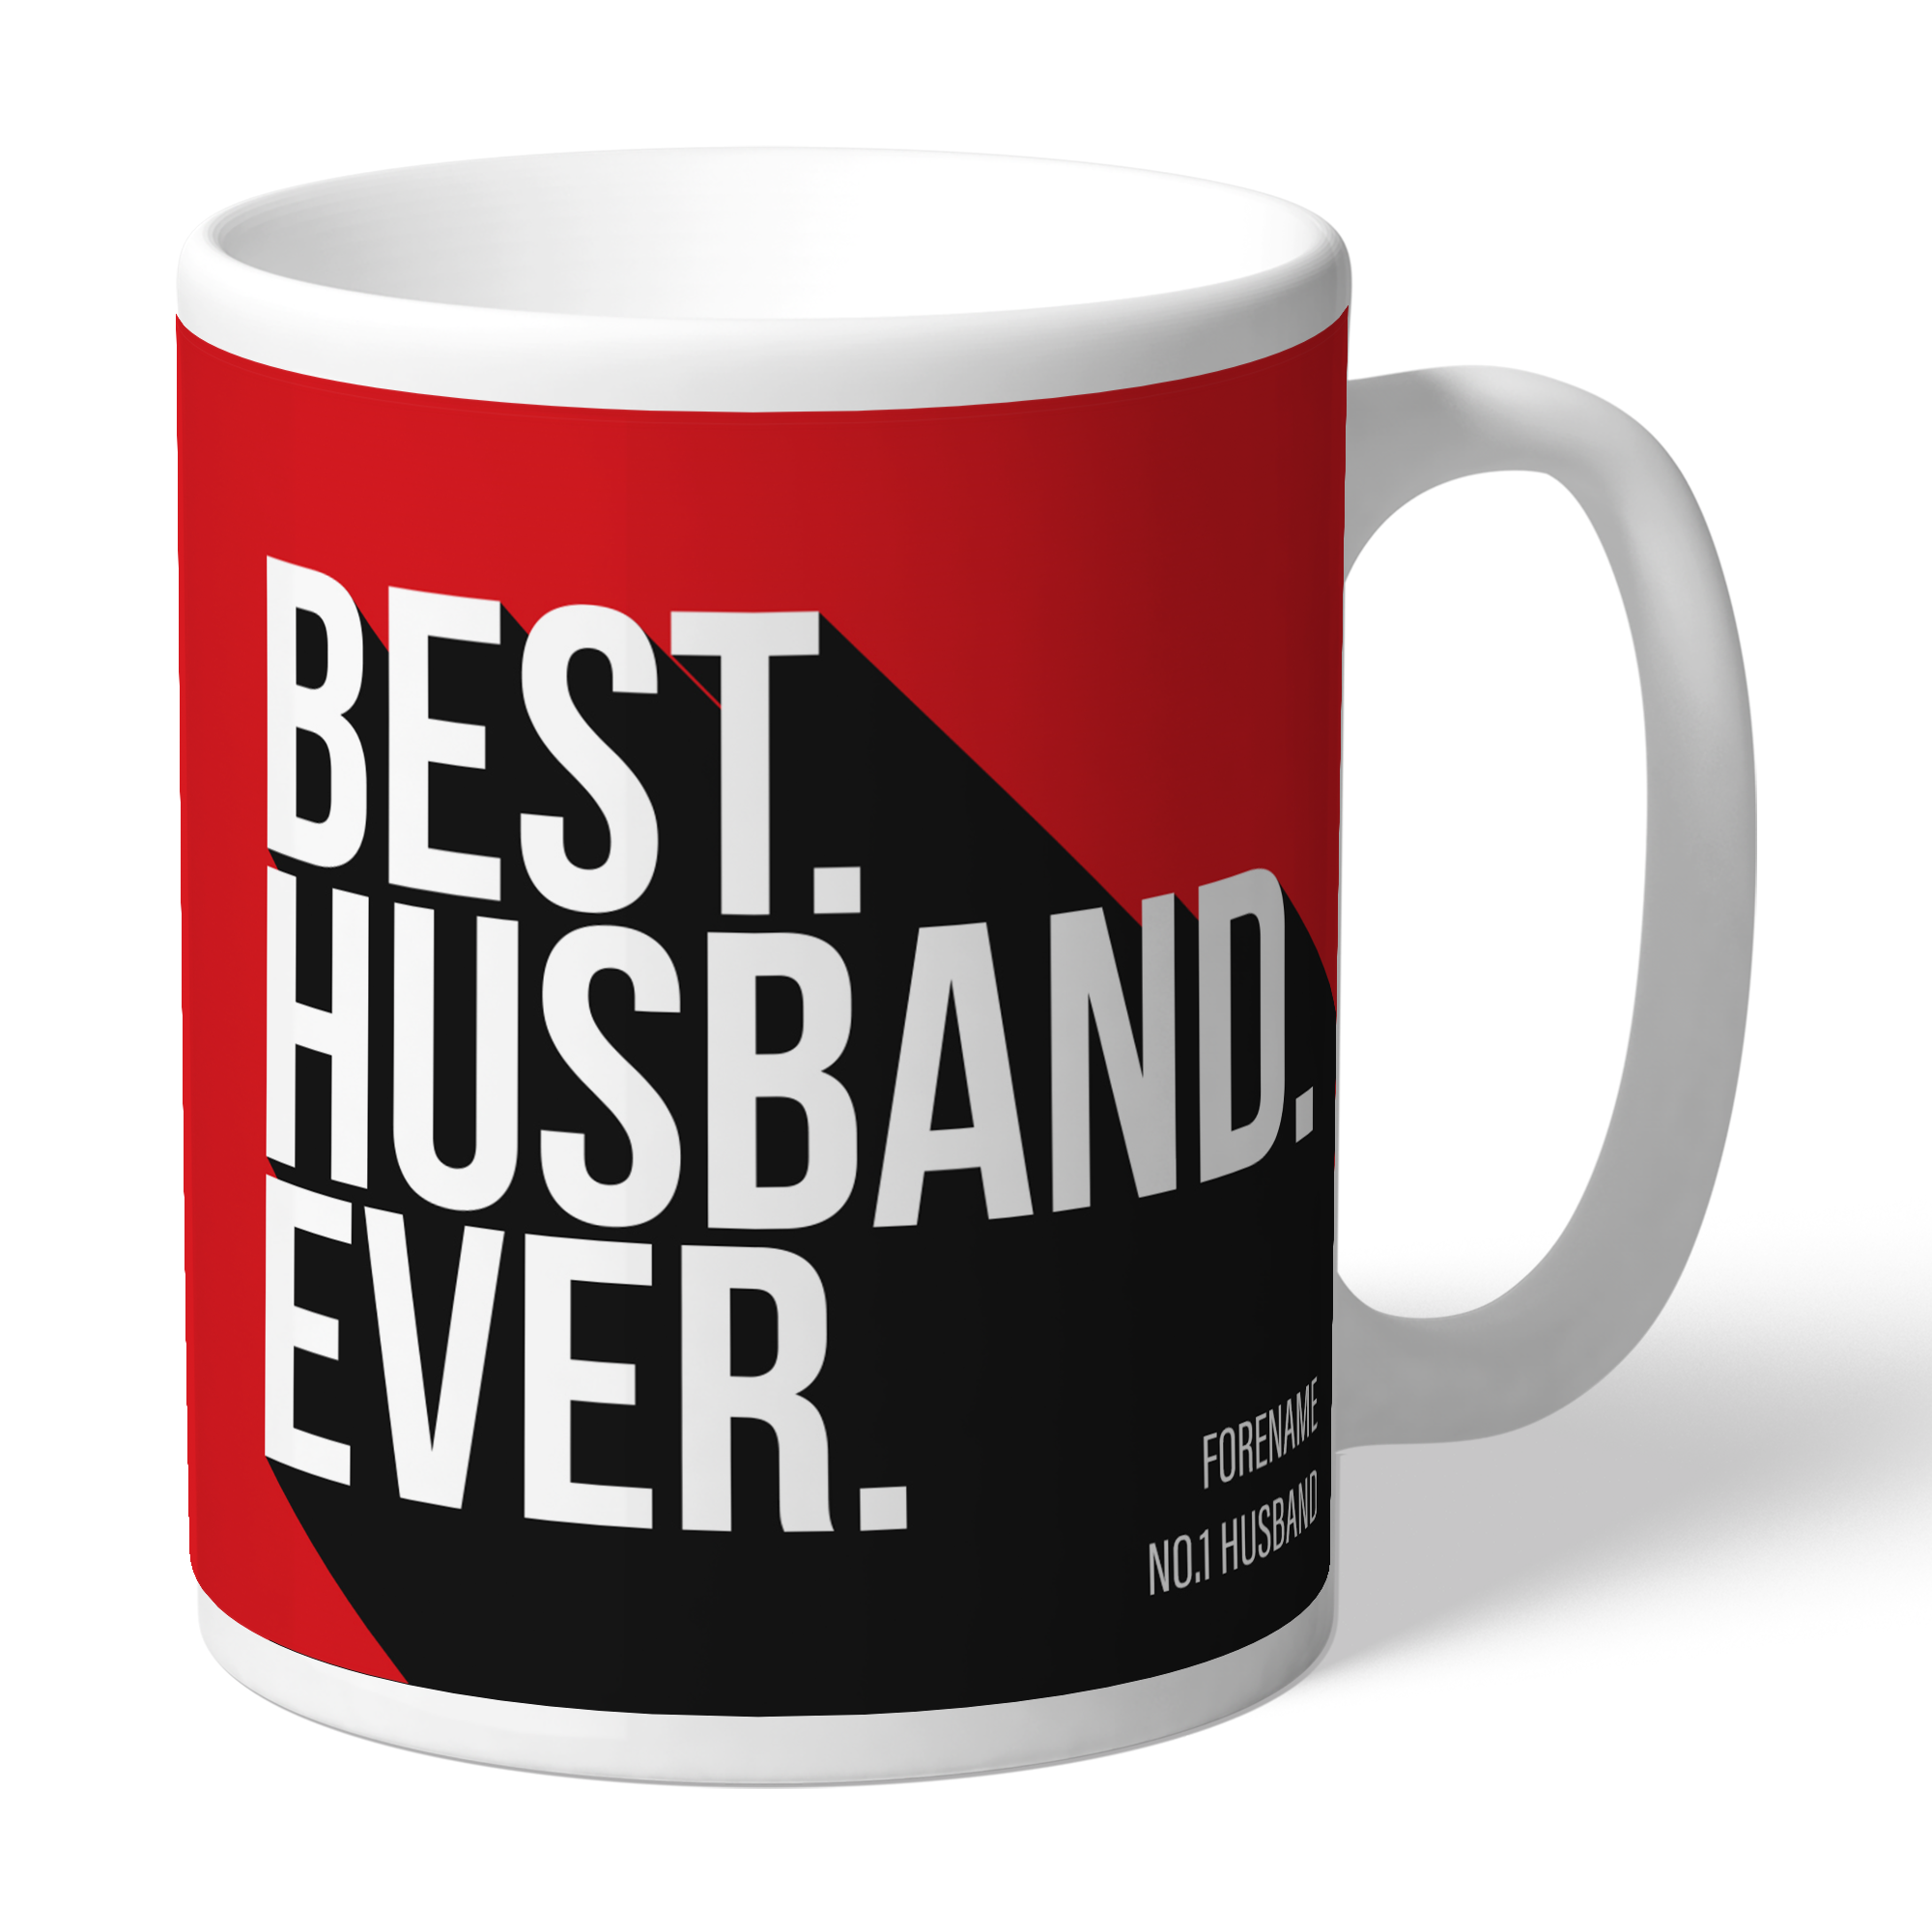 Southampton FC Best Husband Ever Mug